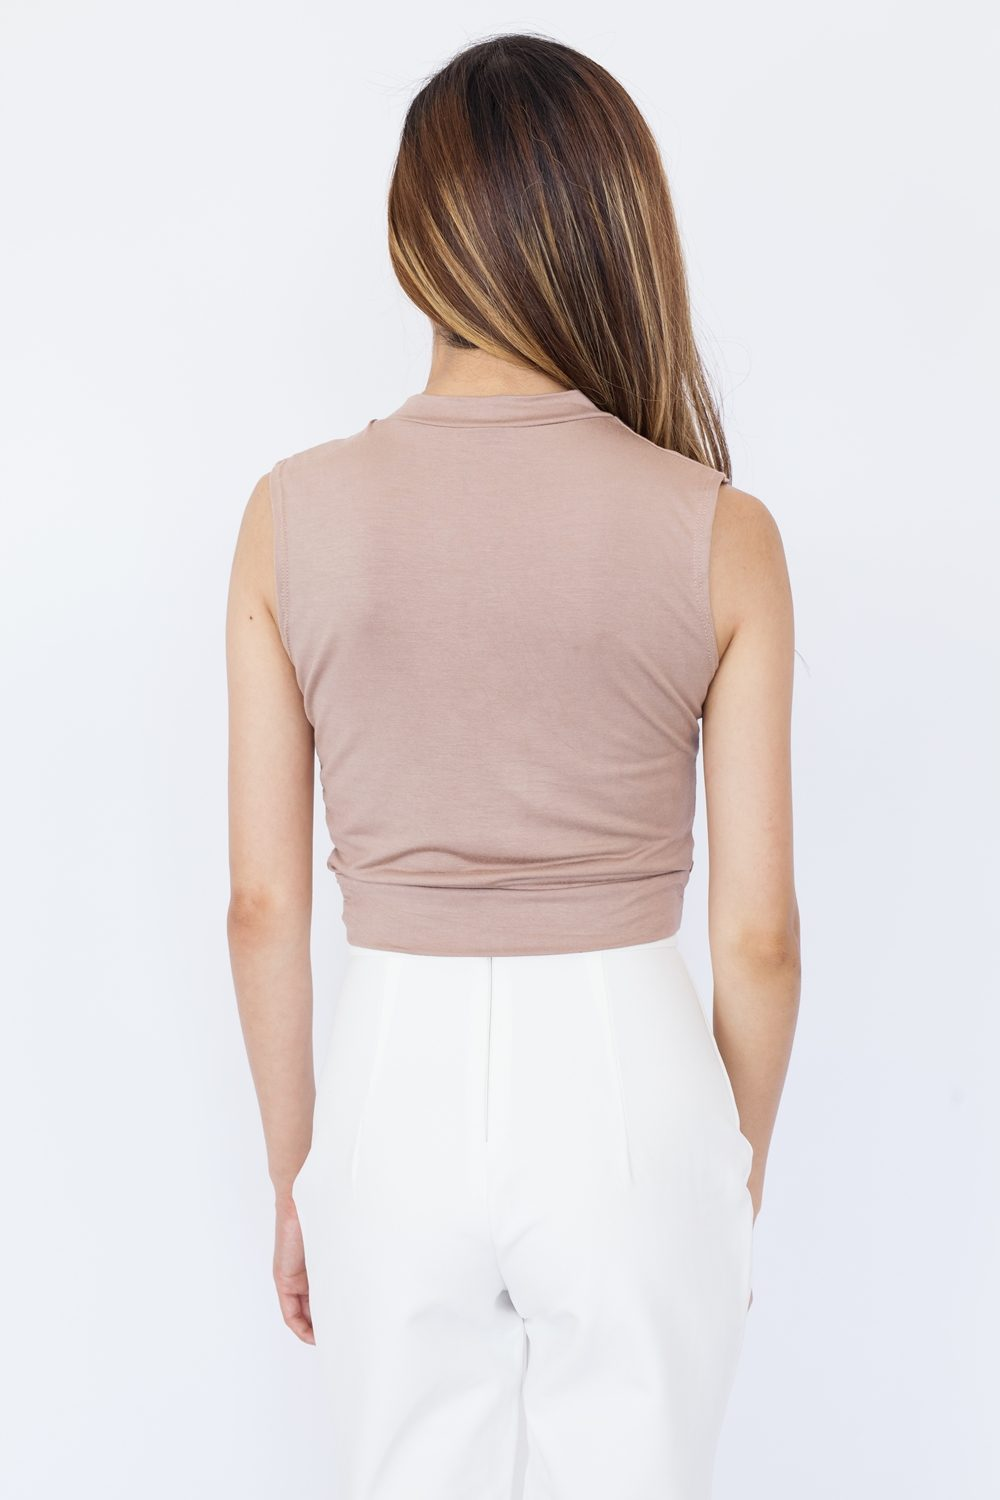 Sleeveless Twist Front Crop Top - Khaki